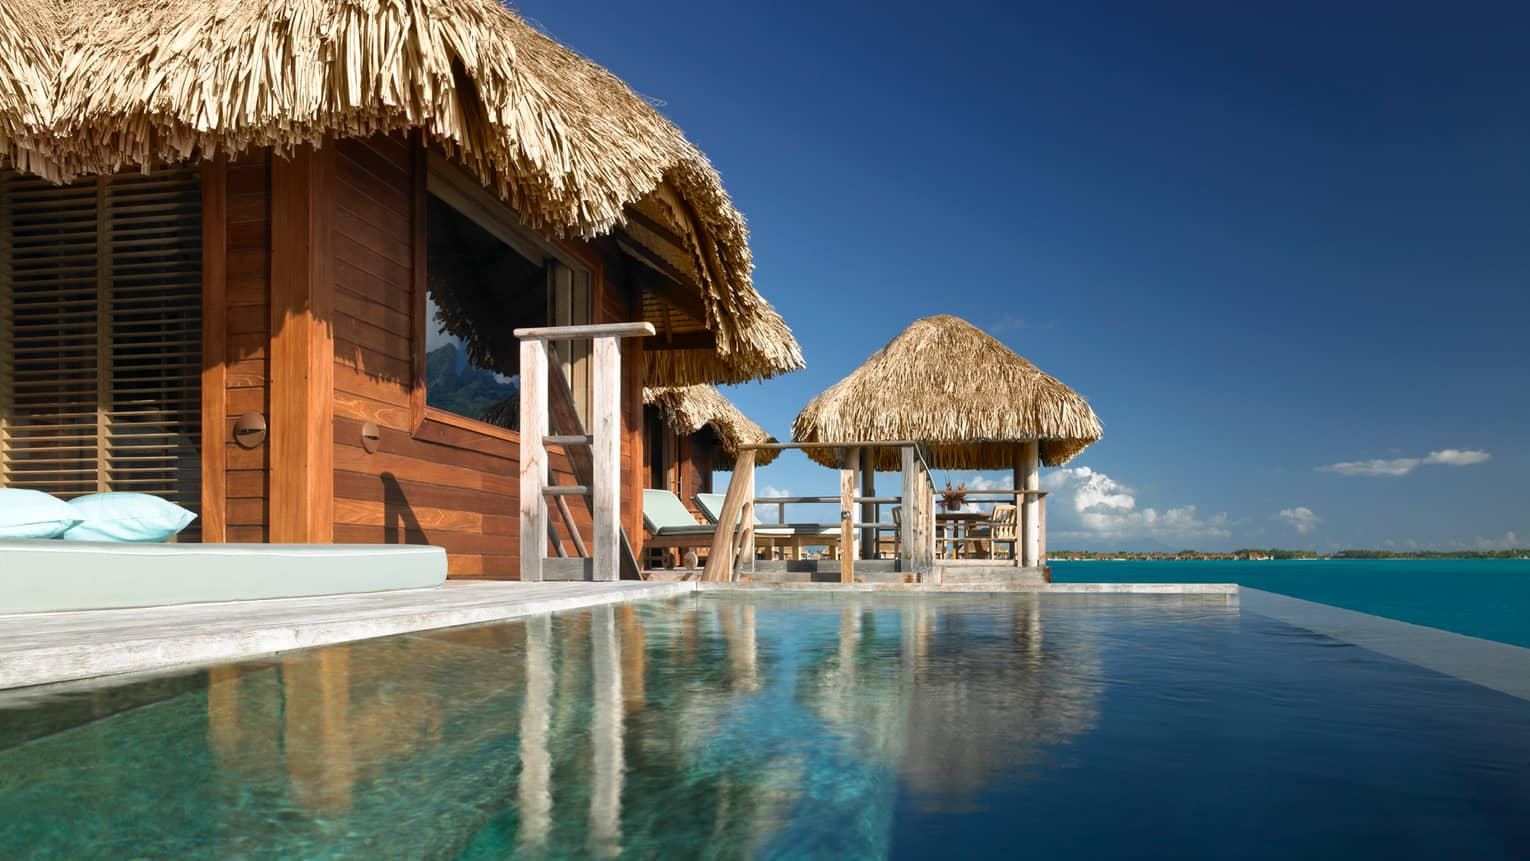 View From Plunge Pool Of Water Suite Bungalow Looking Up At Patio Chairs And Thatched